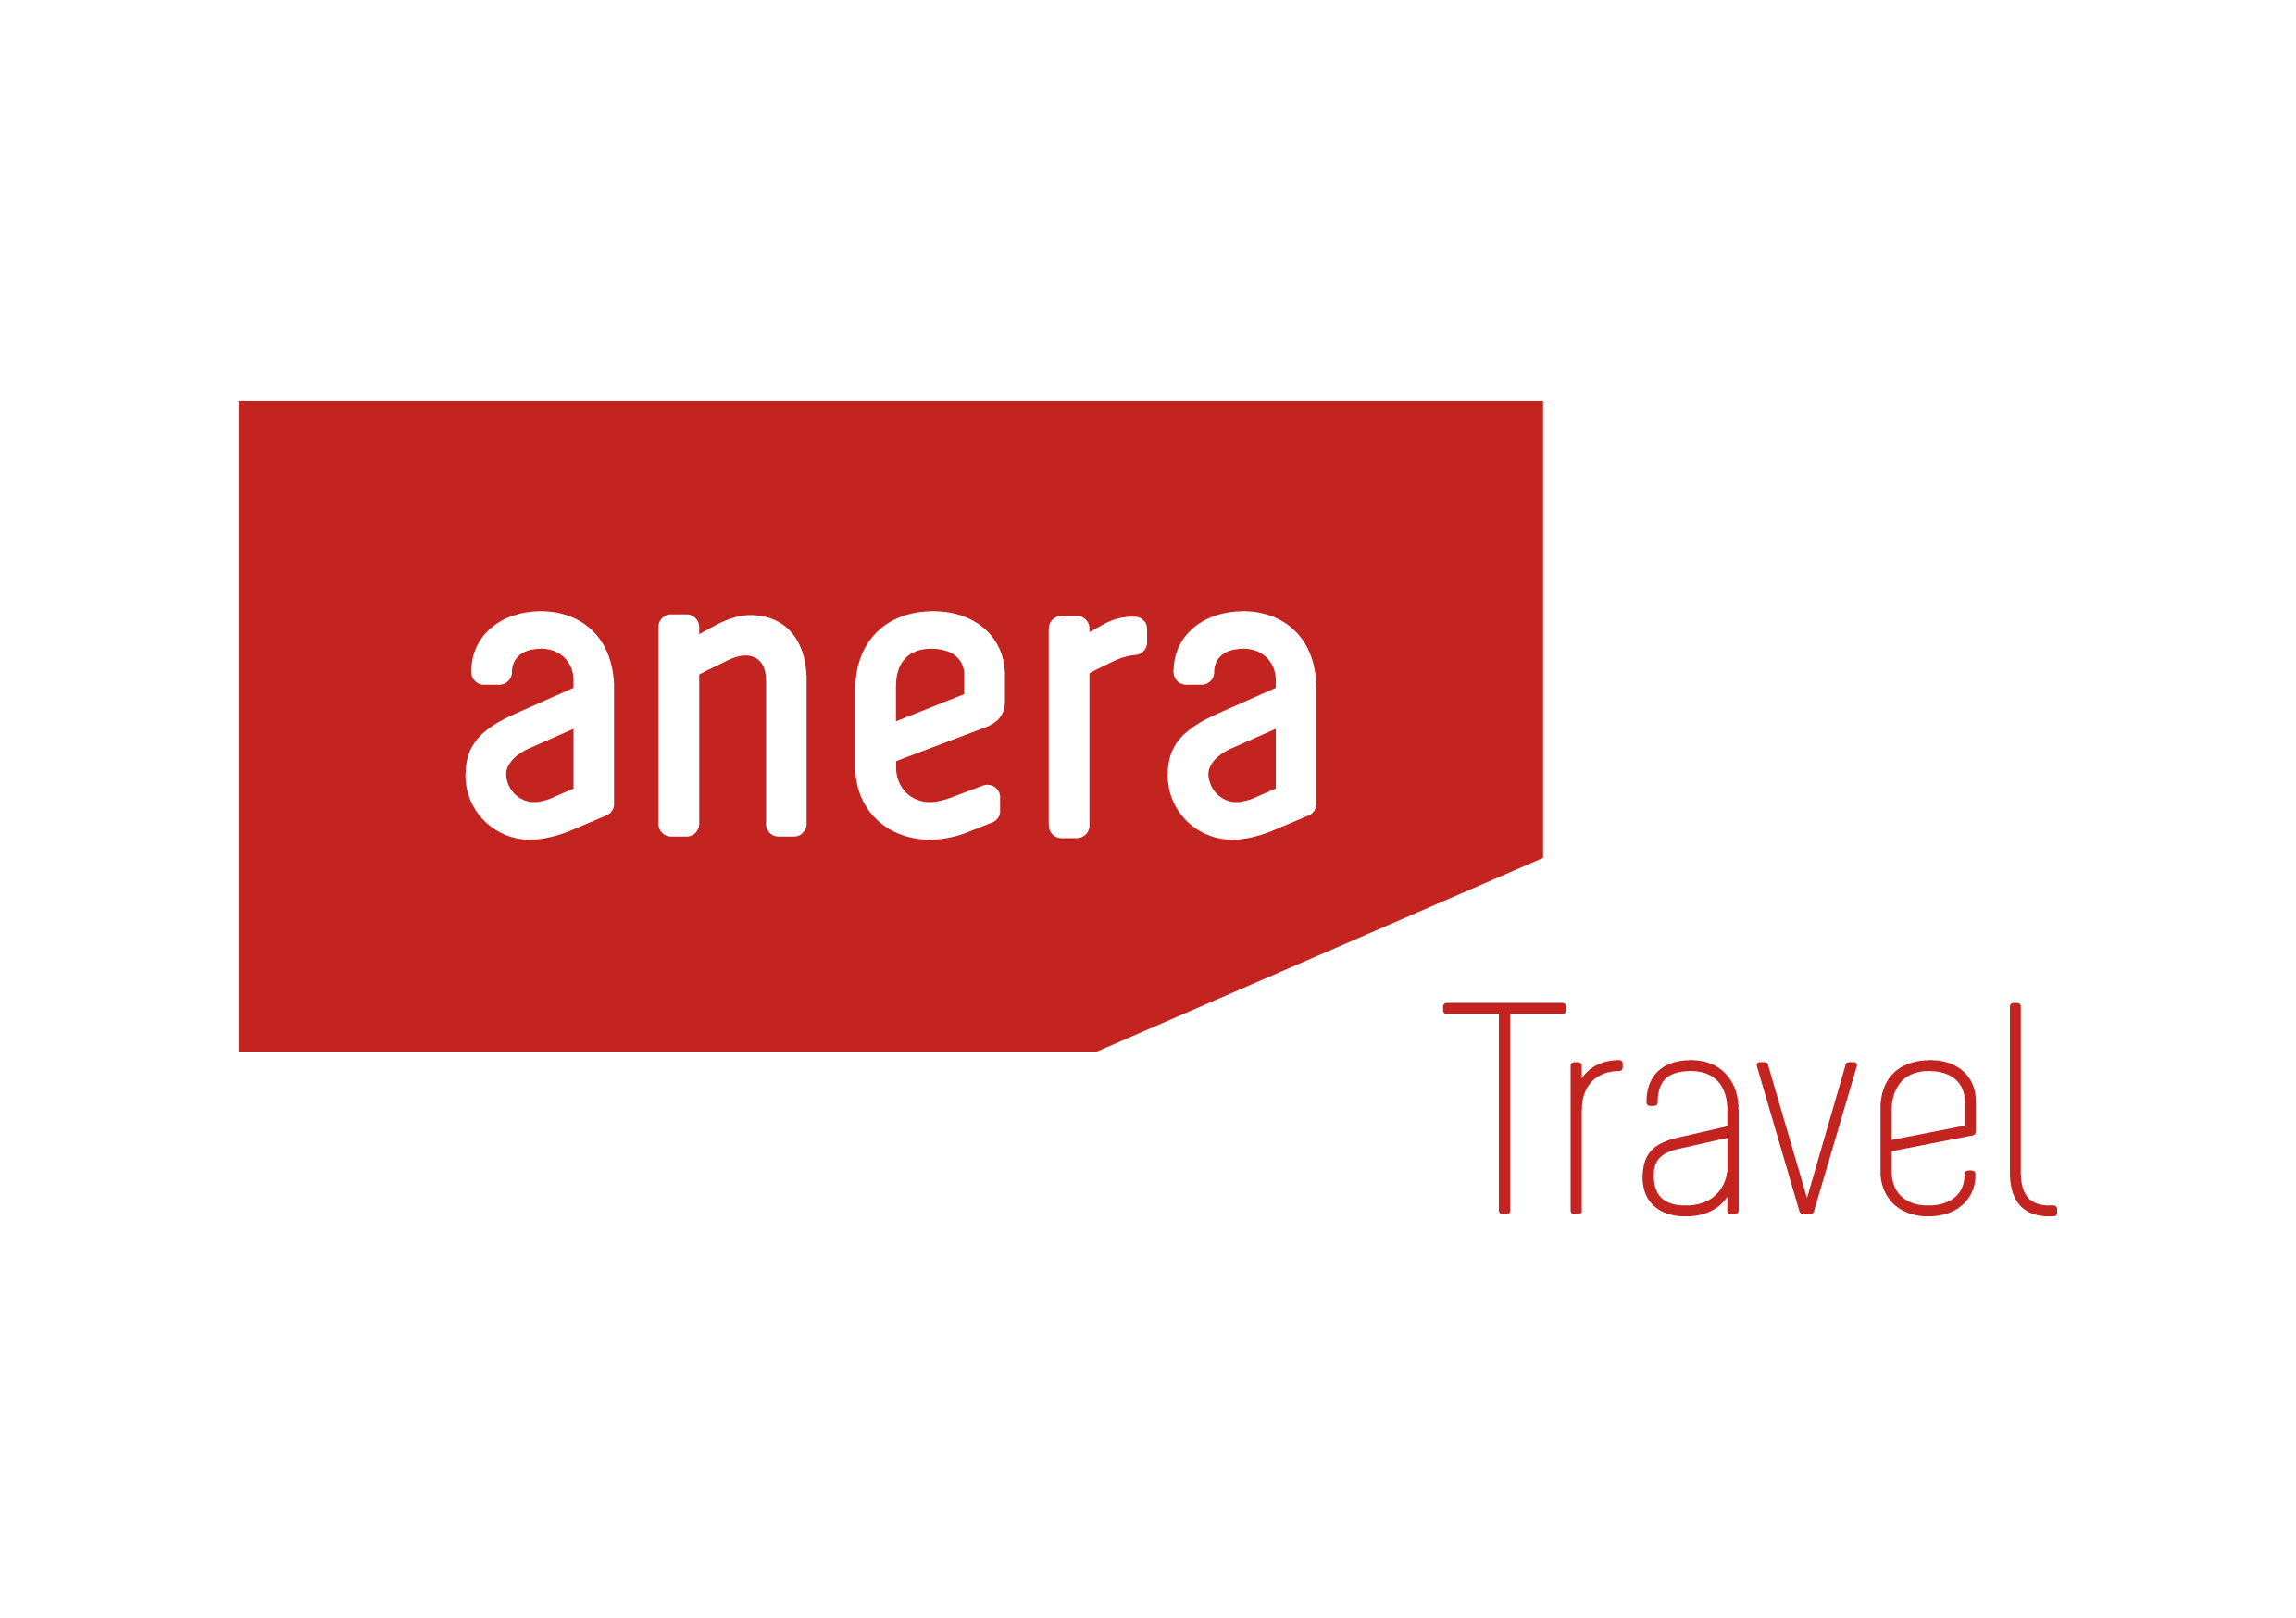 Anera travel rojo transpatente